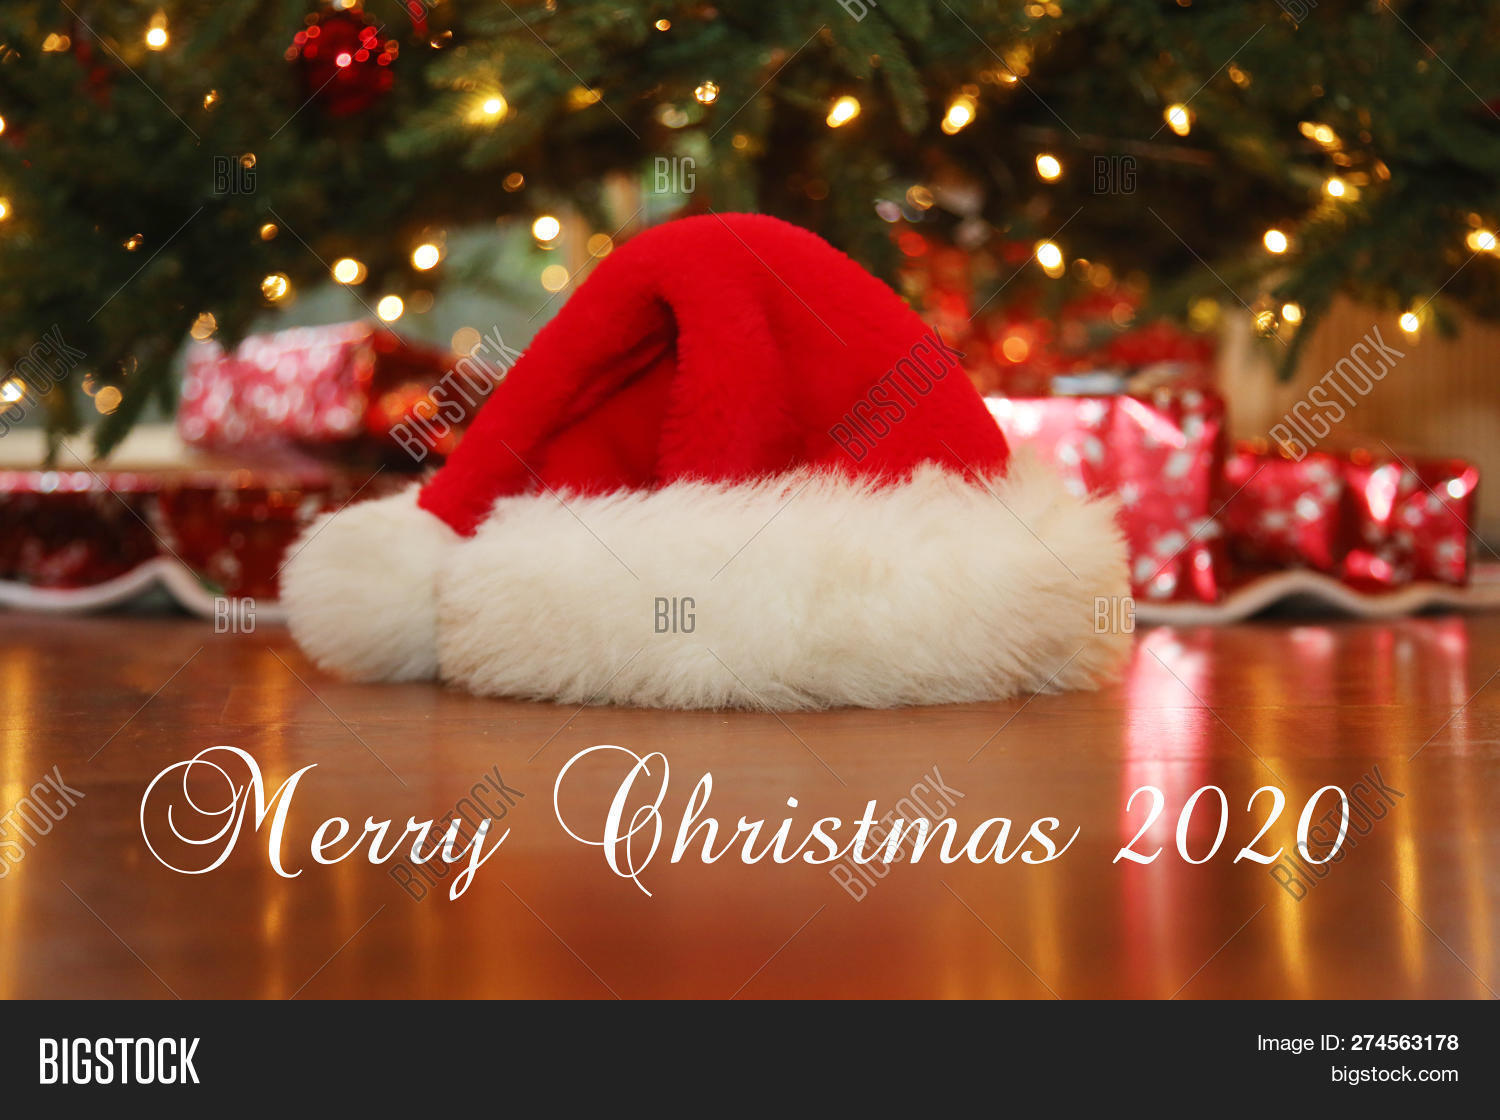 Merry Christmas Images 2020.Christmas 2020 Santa Image Photo Free Trial Bigstock